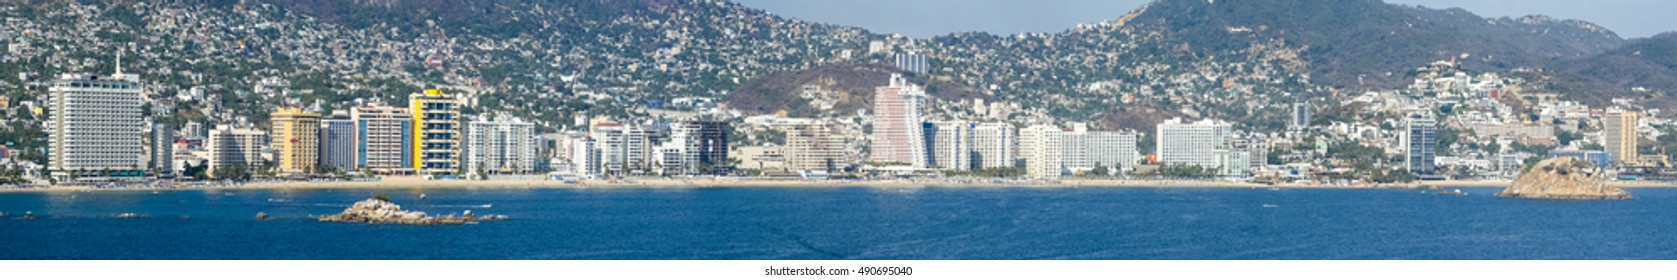 A panoramic view of the skyscraper riviera of Acapulco, Mexico.